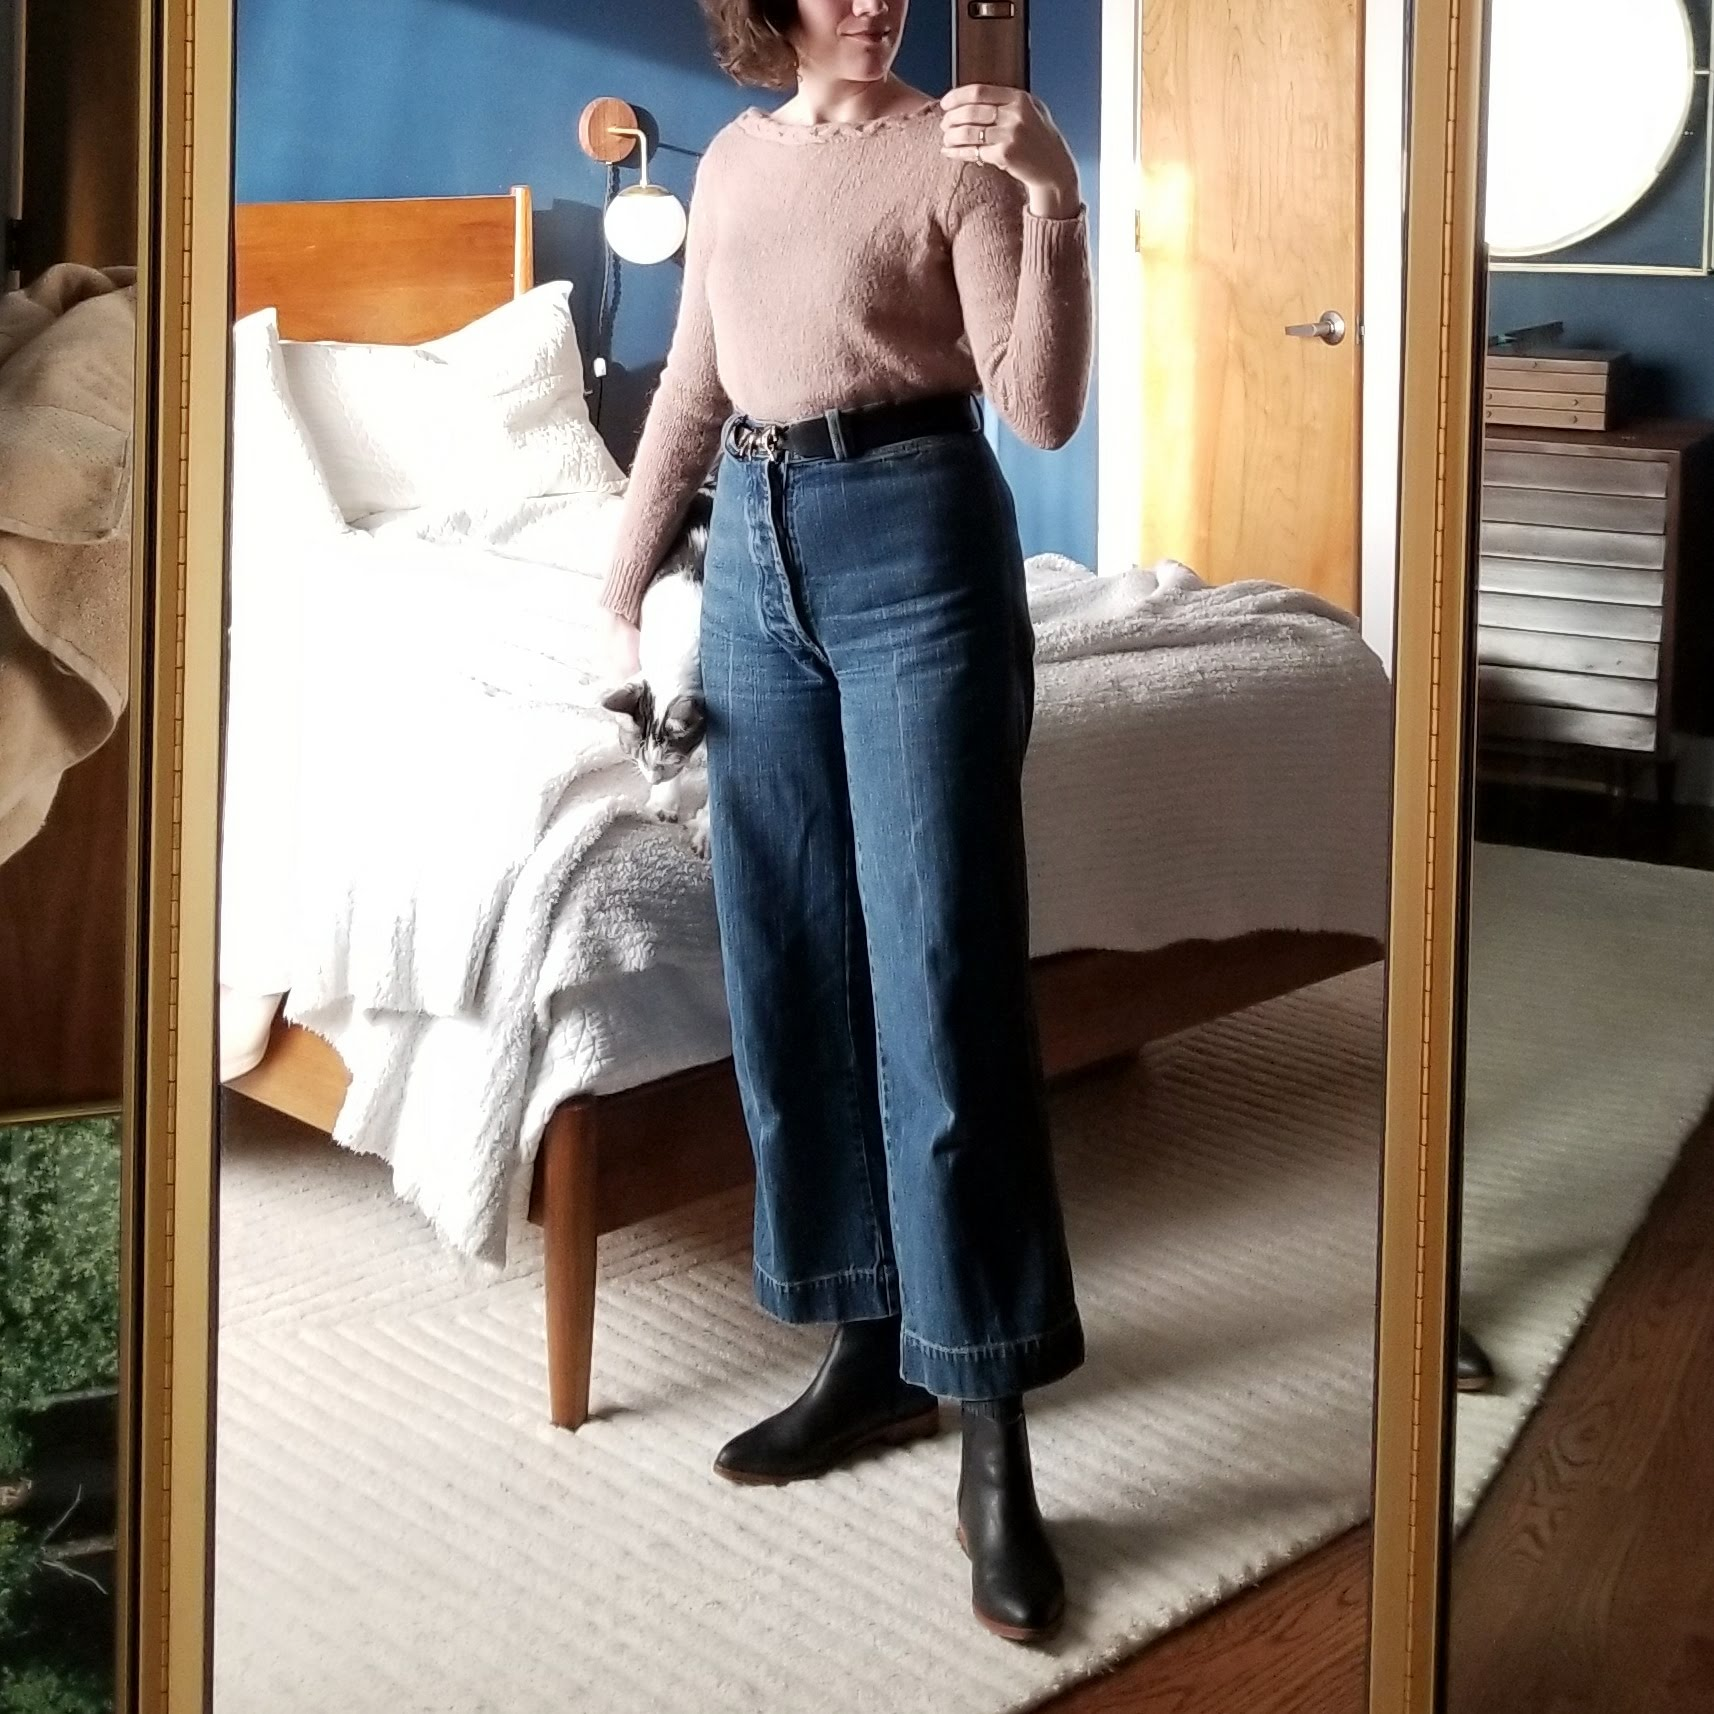 Friday - March 23, 2018Wide leg jeans again because I wanted to wear this sweater tucked in to something more exciting. I love how these jeans make basically anything look good.